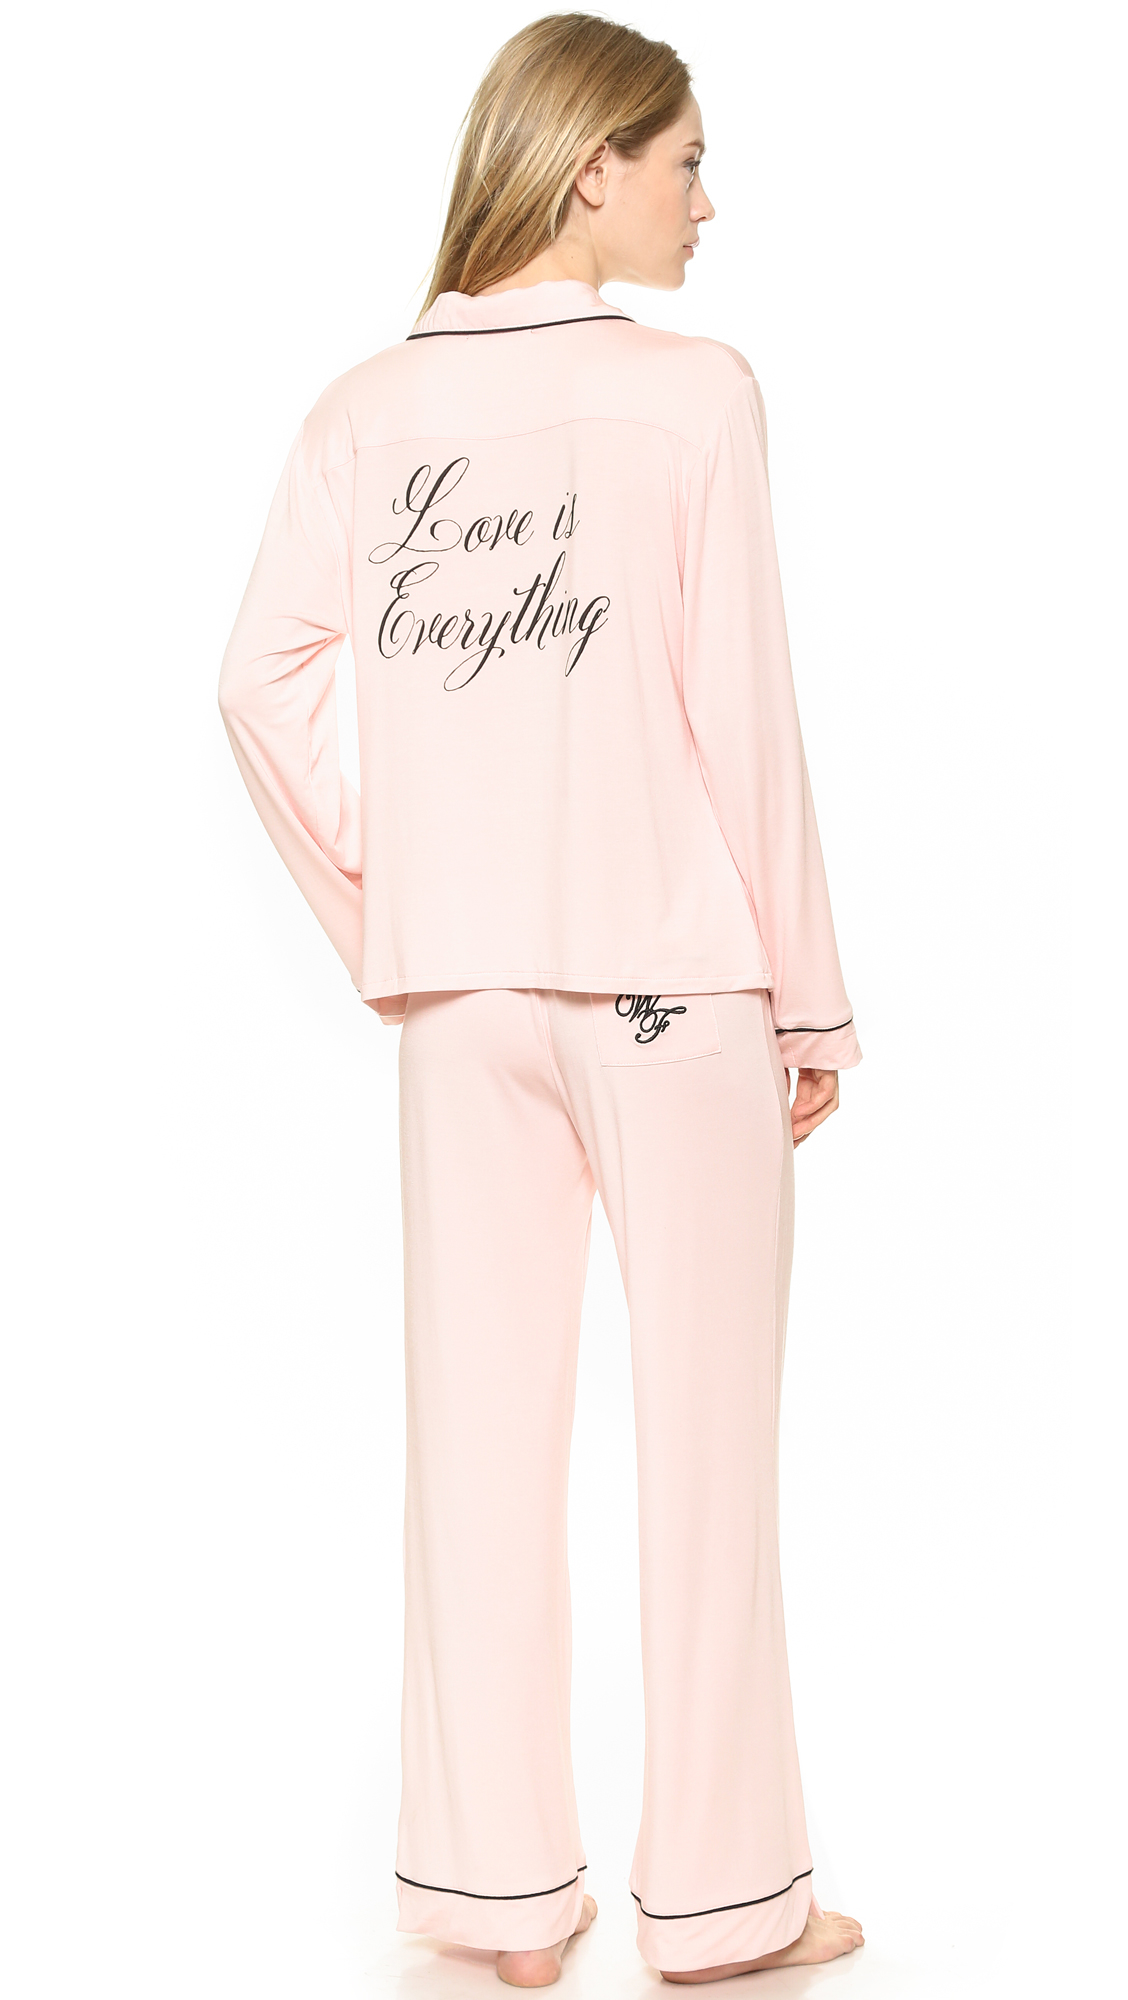 Lyst - Wildfox Love Is Everything Pj Set - Black in Pink 076a5b218